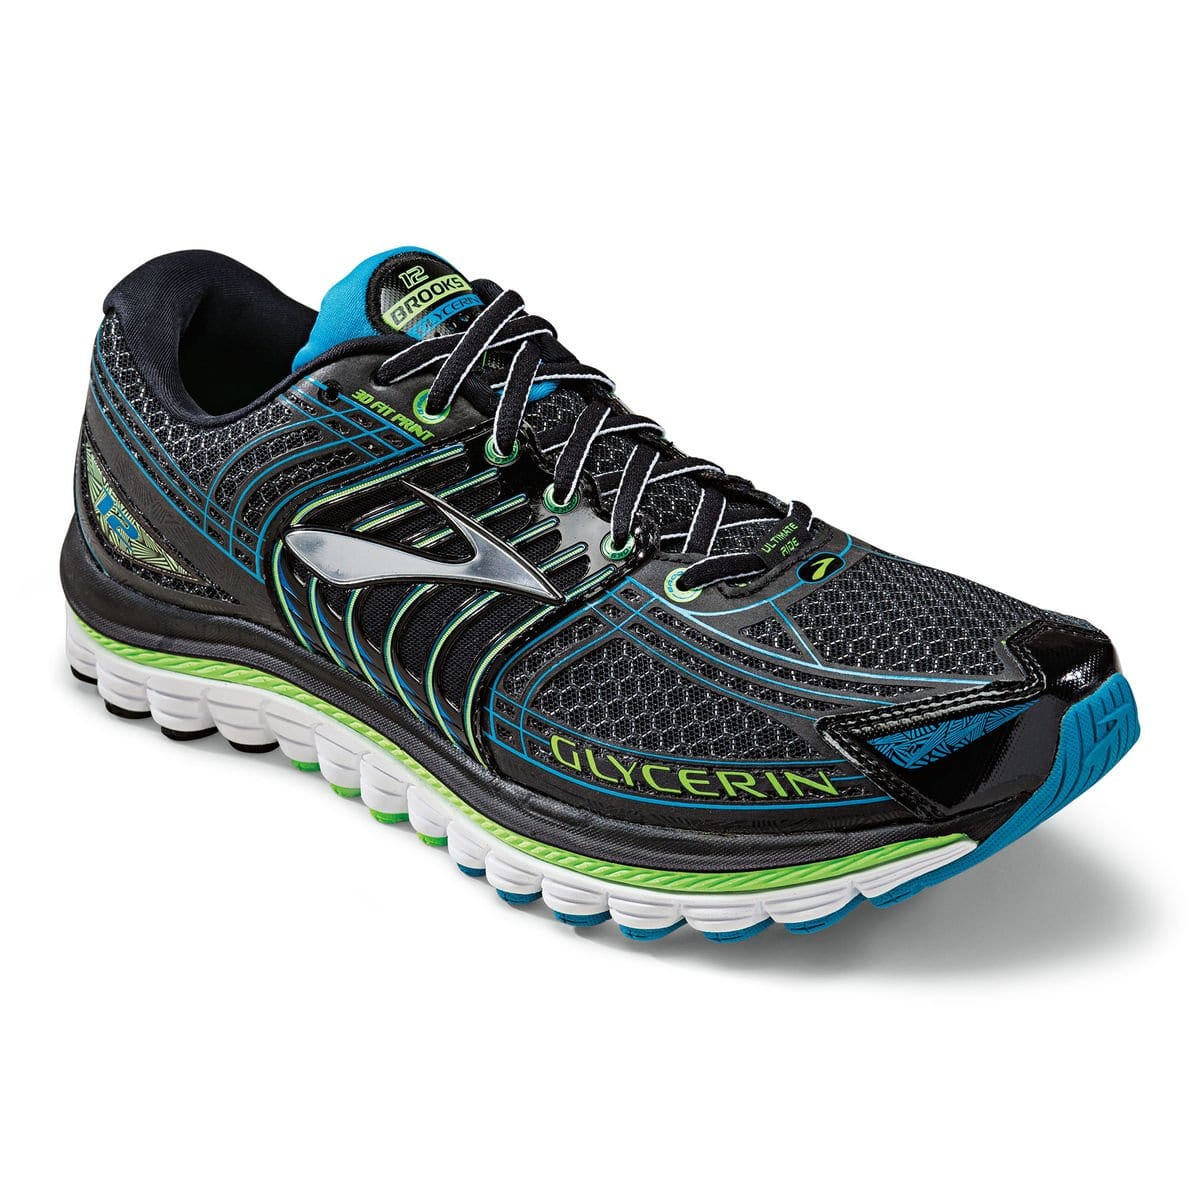 Glycerin Shoes Review